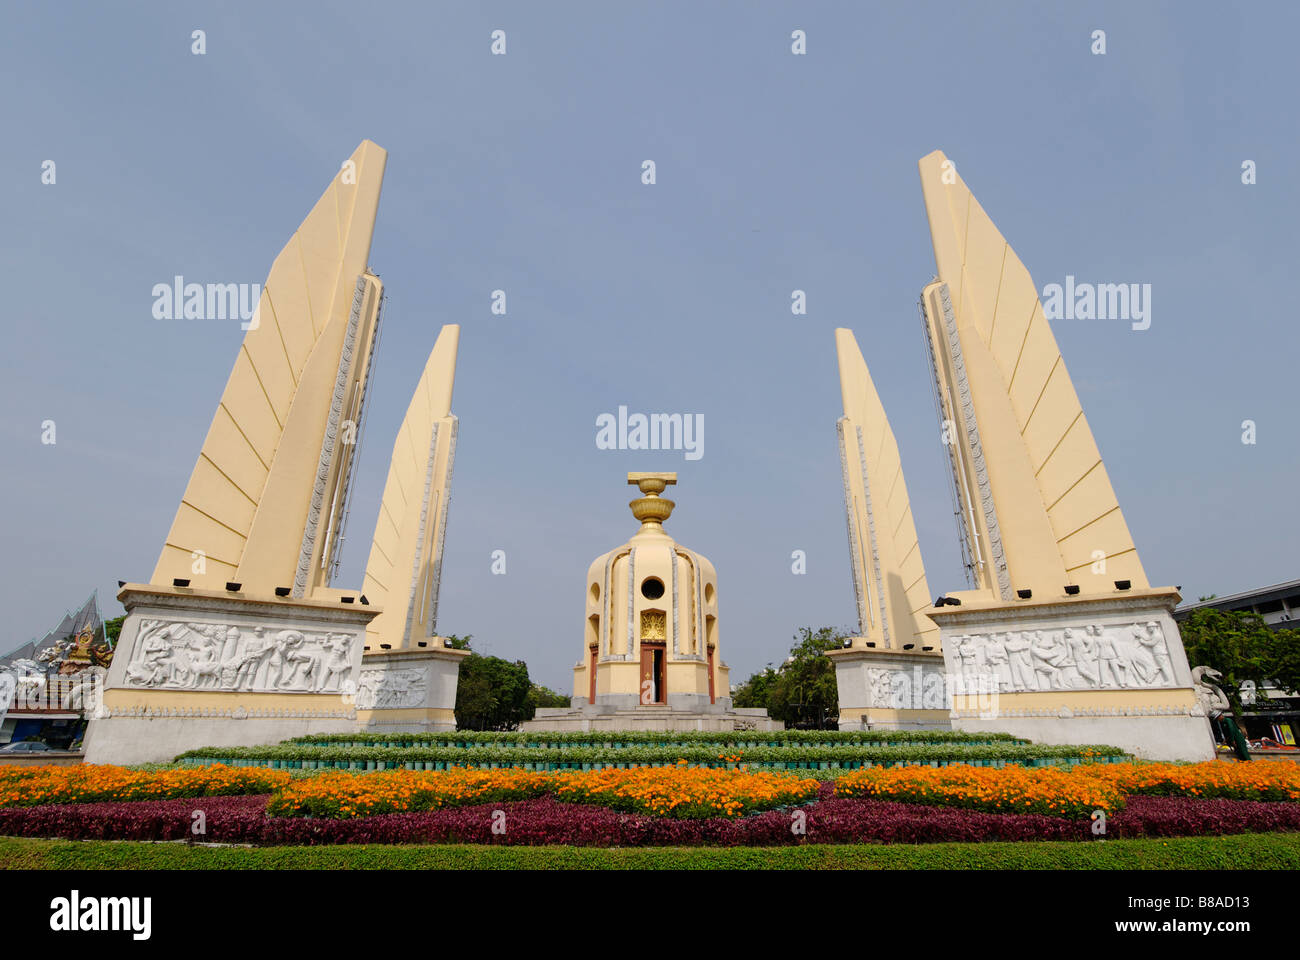 Democracy Monument built after the military overthrew the absolute monarchy in 1932 - Bangkok, Thailand - Stock Image